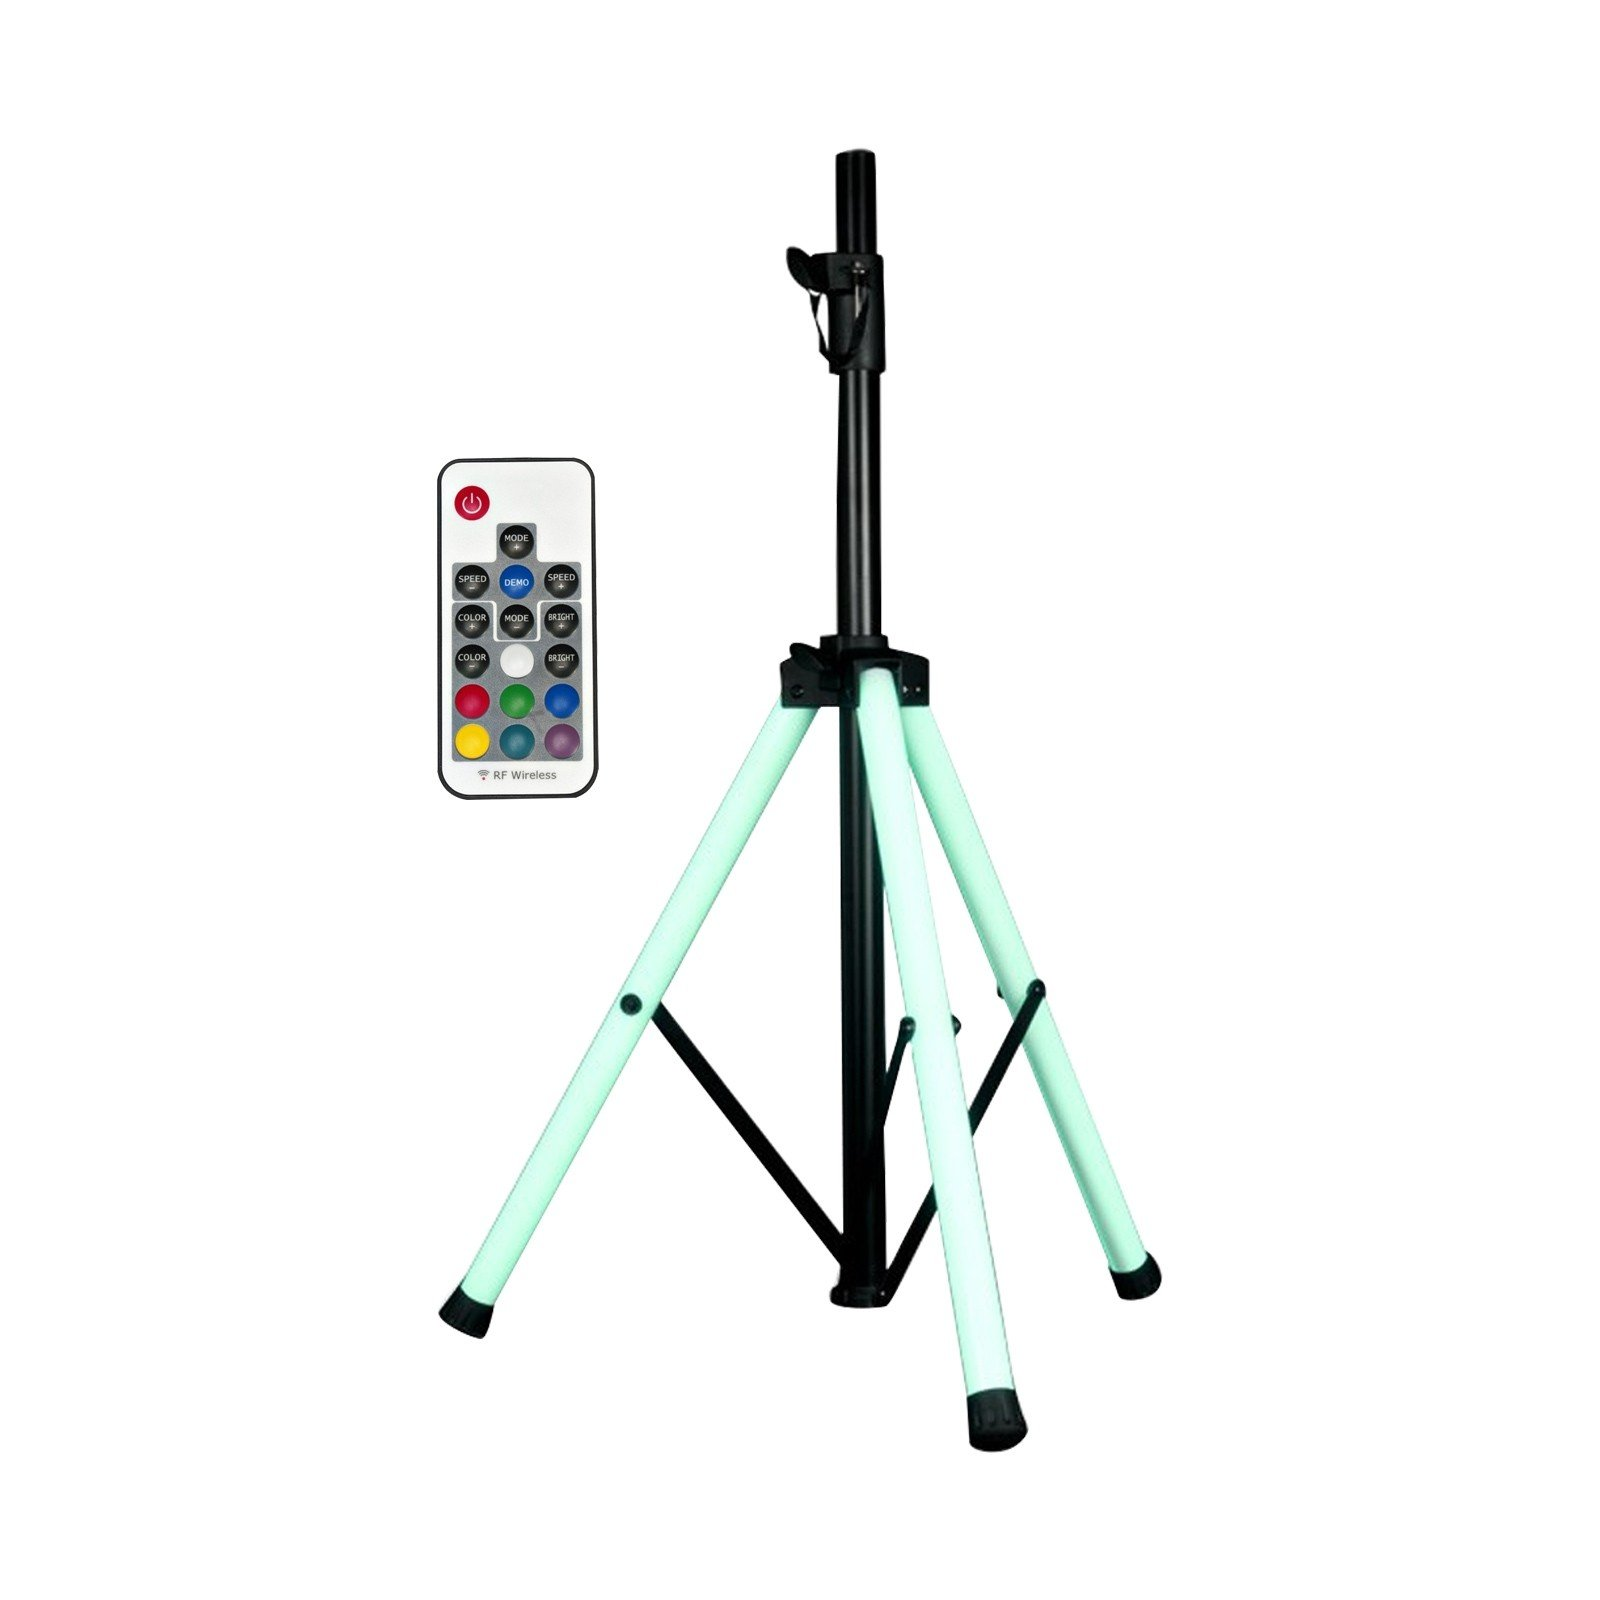 American Audio LED color changing tripod leg speaker stand with remote by American Audio